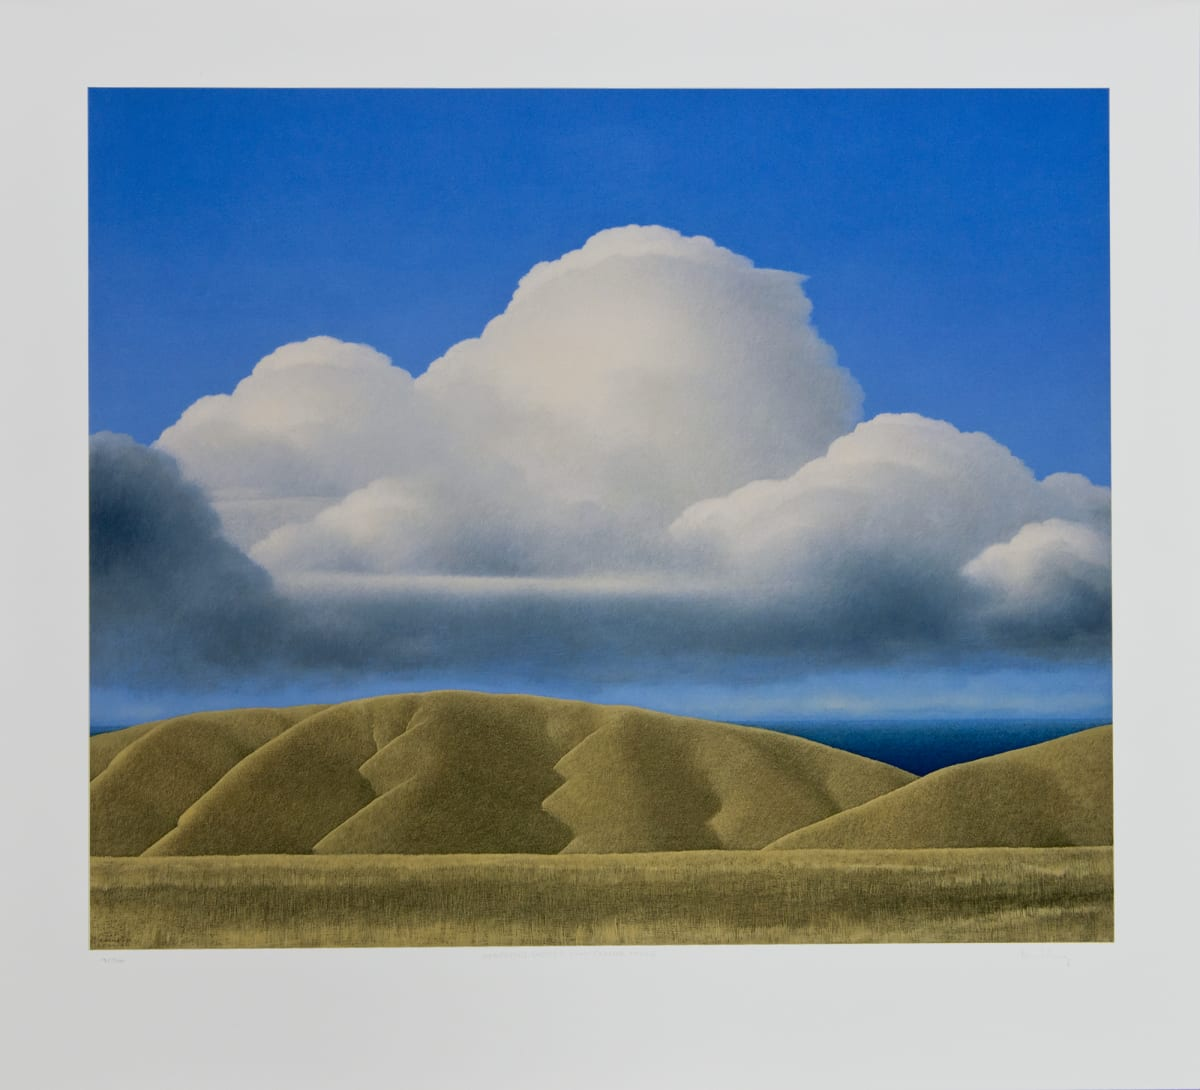 Brent Wong, Massing Clouds Over Ochre Hills, n.d.